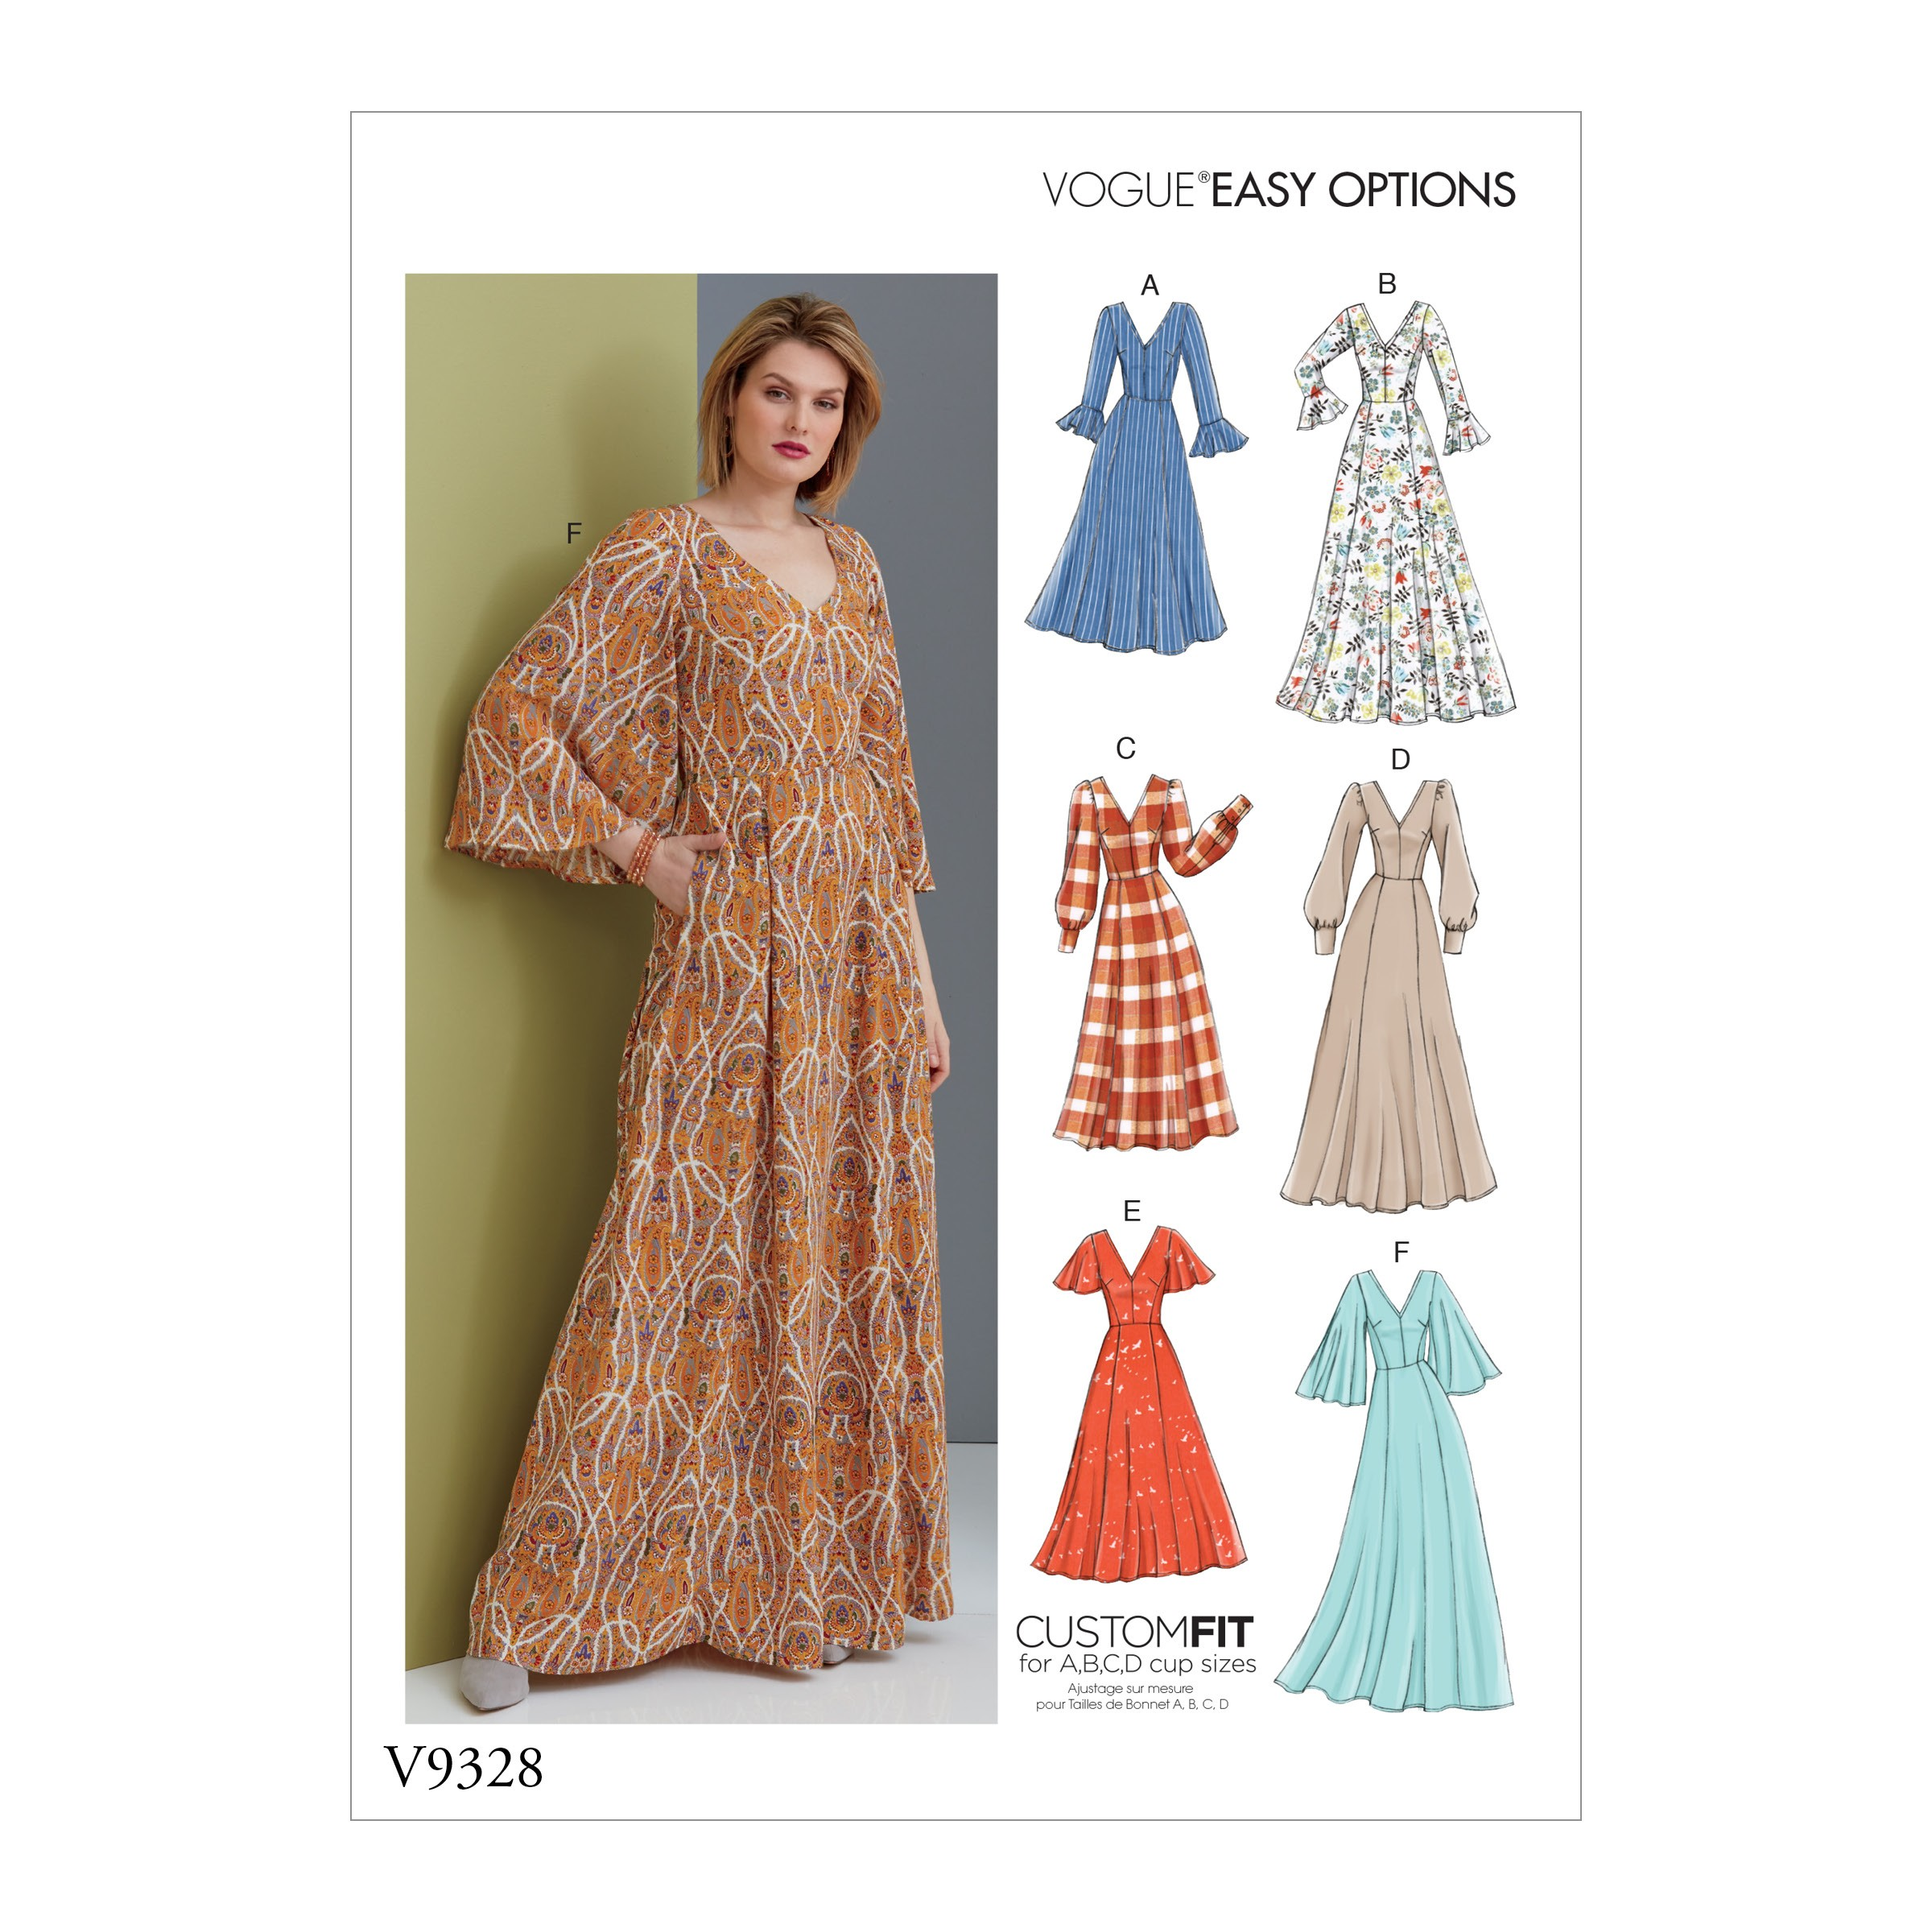 Vogue Sewing Pattern V9328 Women's Dress With Sleeve Variations